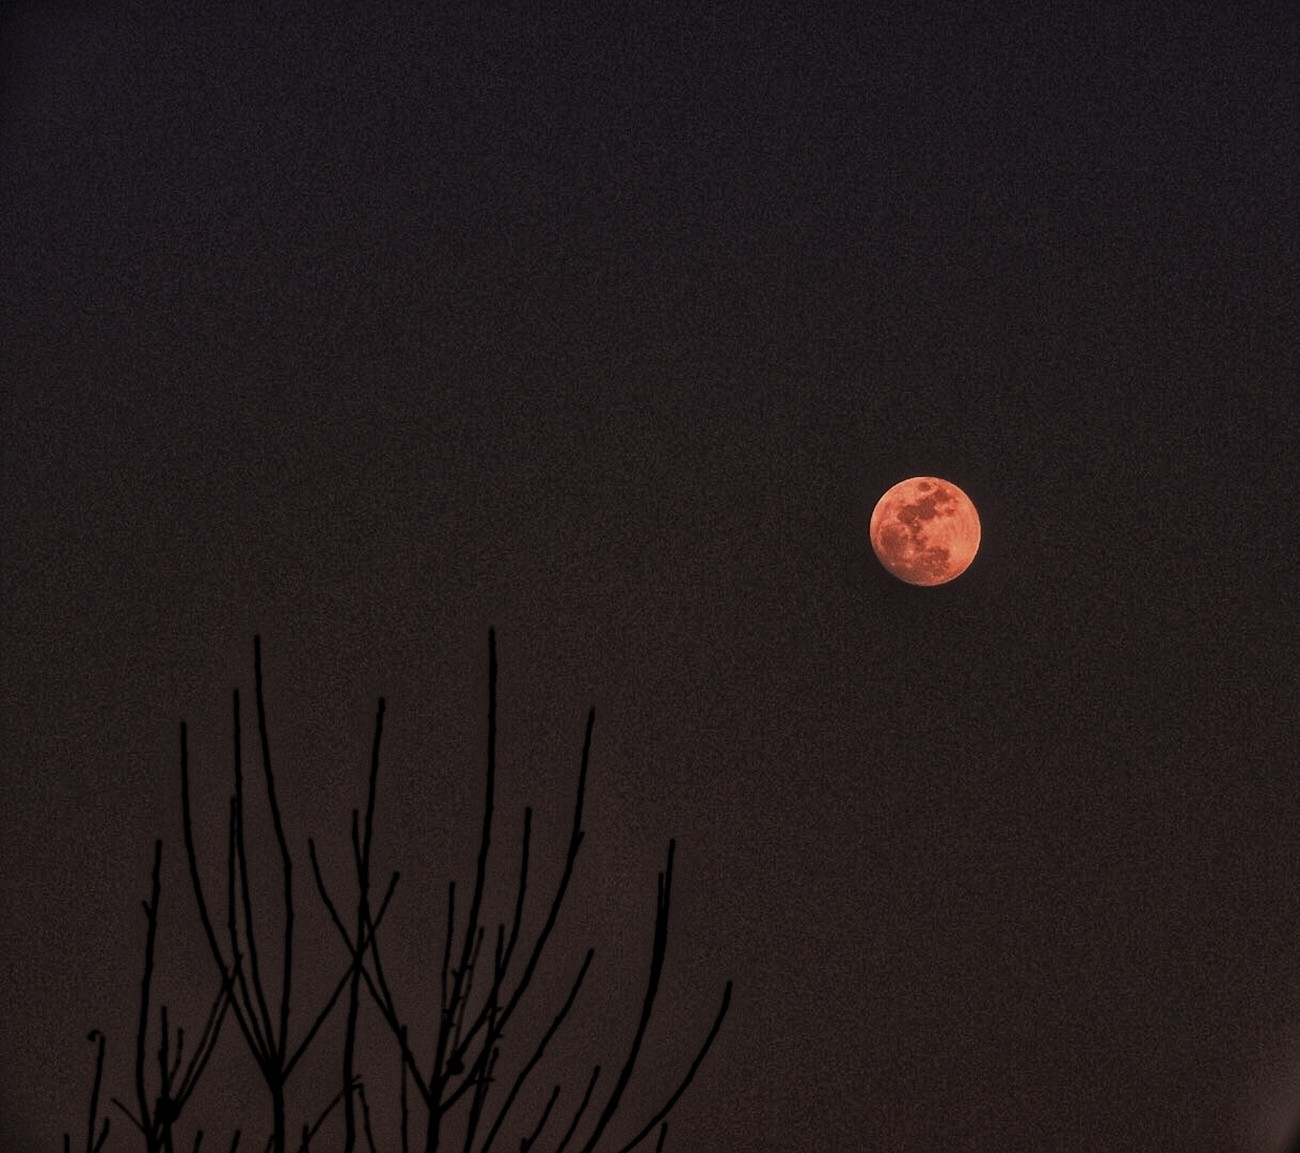 Got this shot around dinner time as the moon was rising. Still one of my favorite subjects